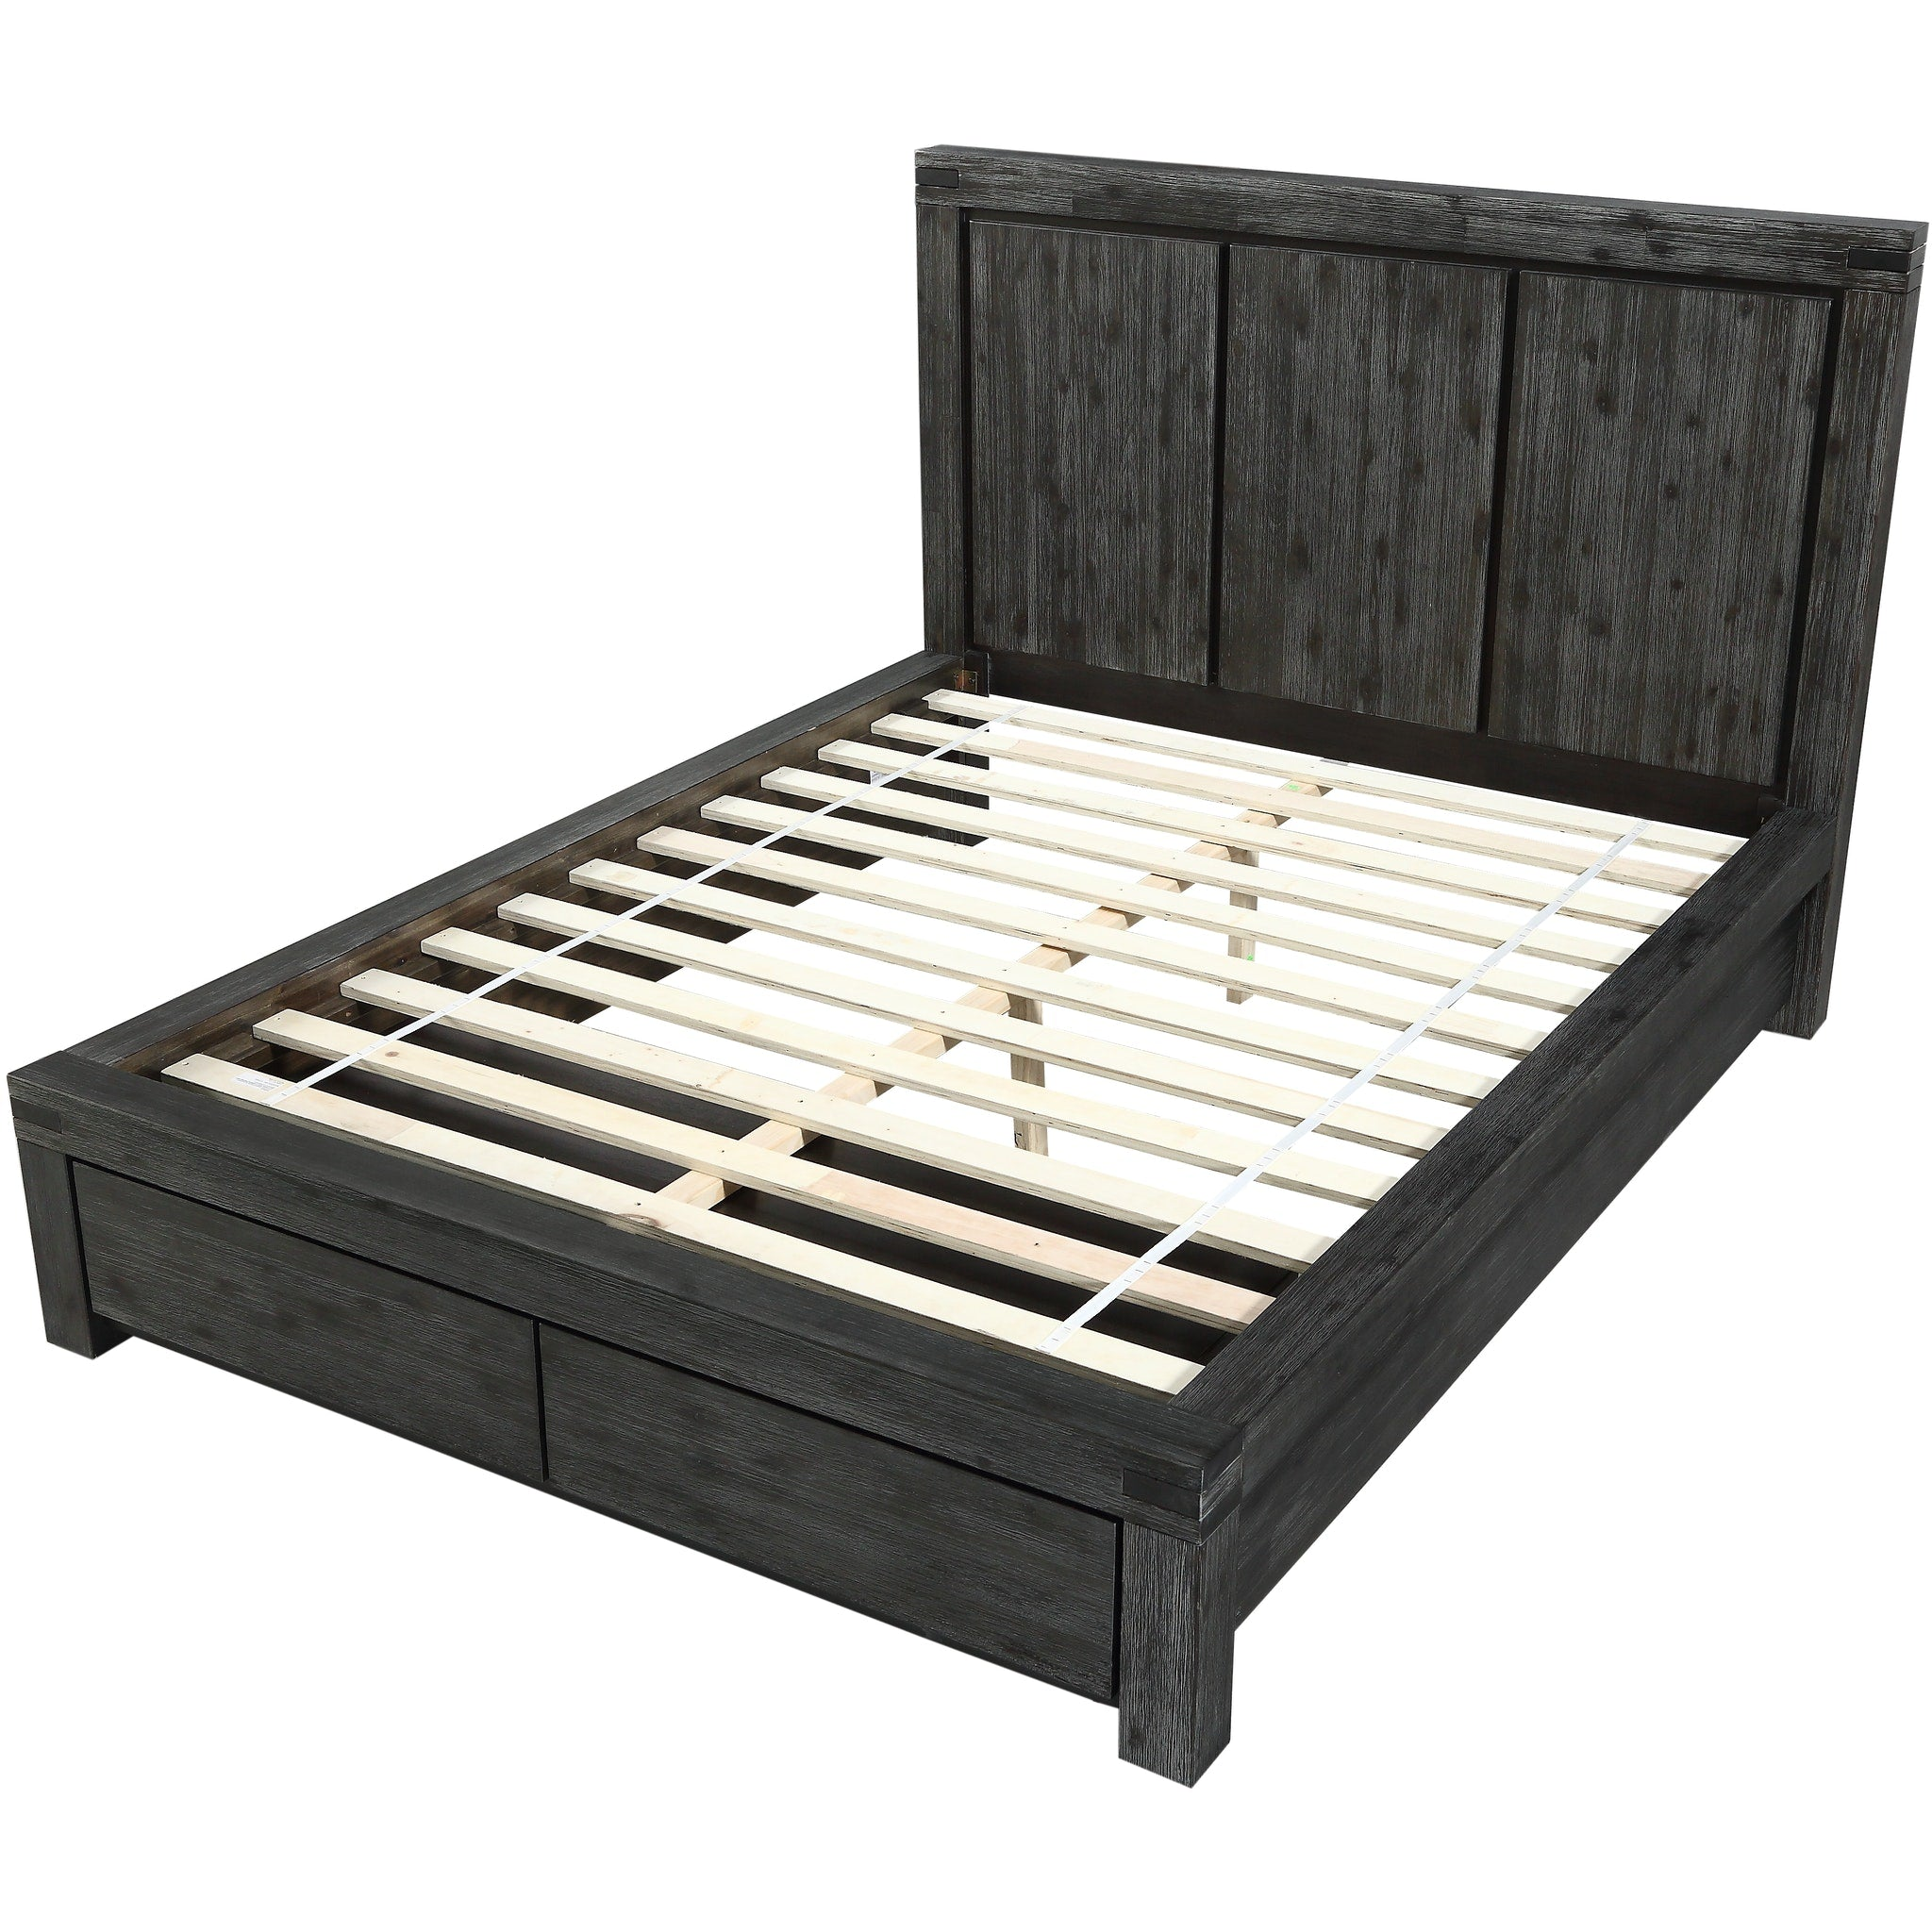 Meadow Full-Size Solid Wood Storage Bed in Graphite